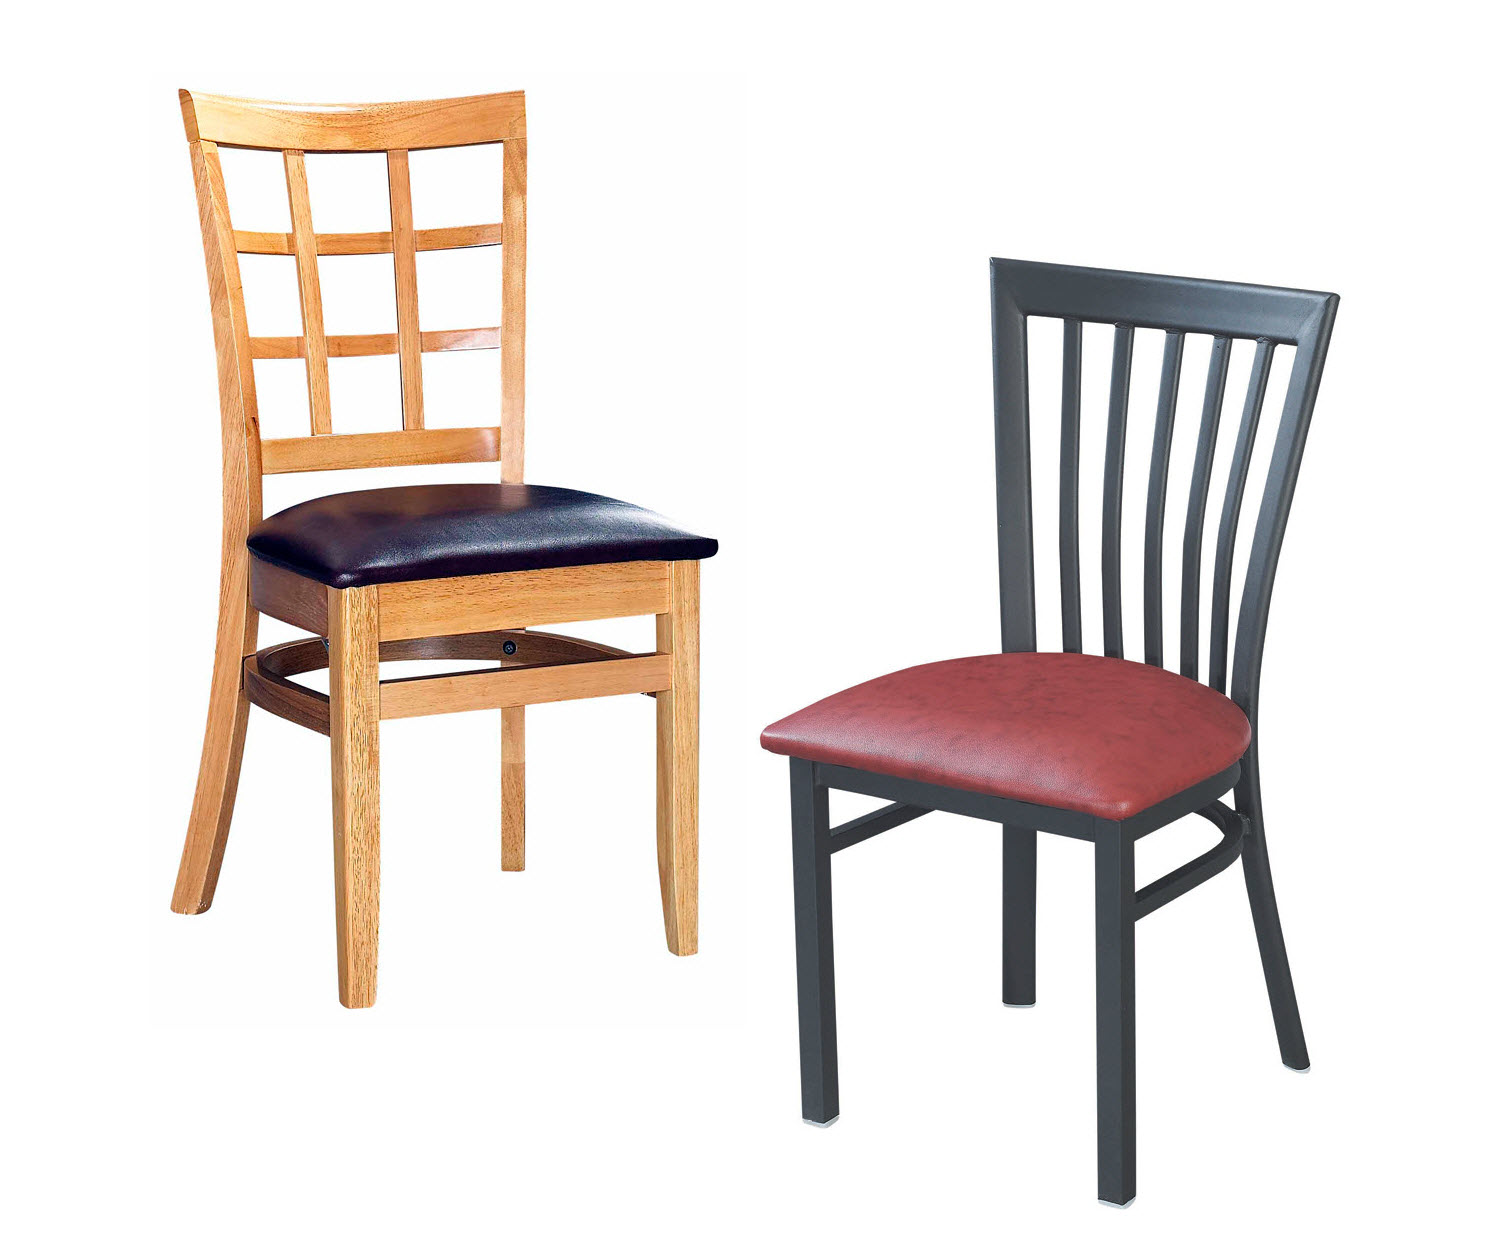 metal vs wood restaurant chairs restaurant seating blog